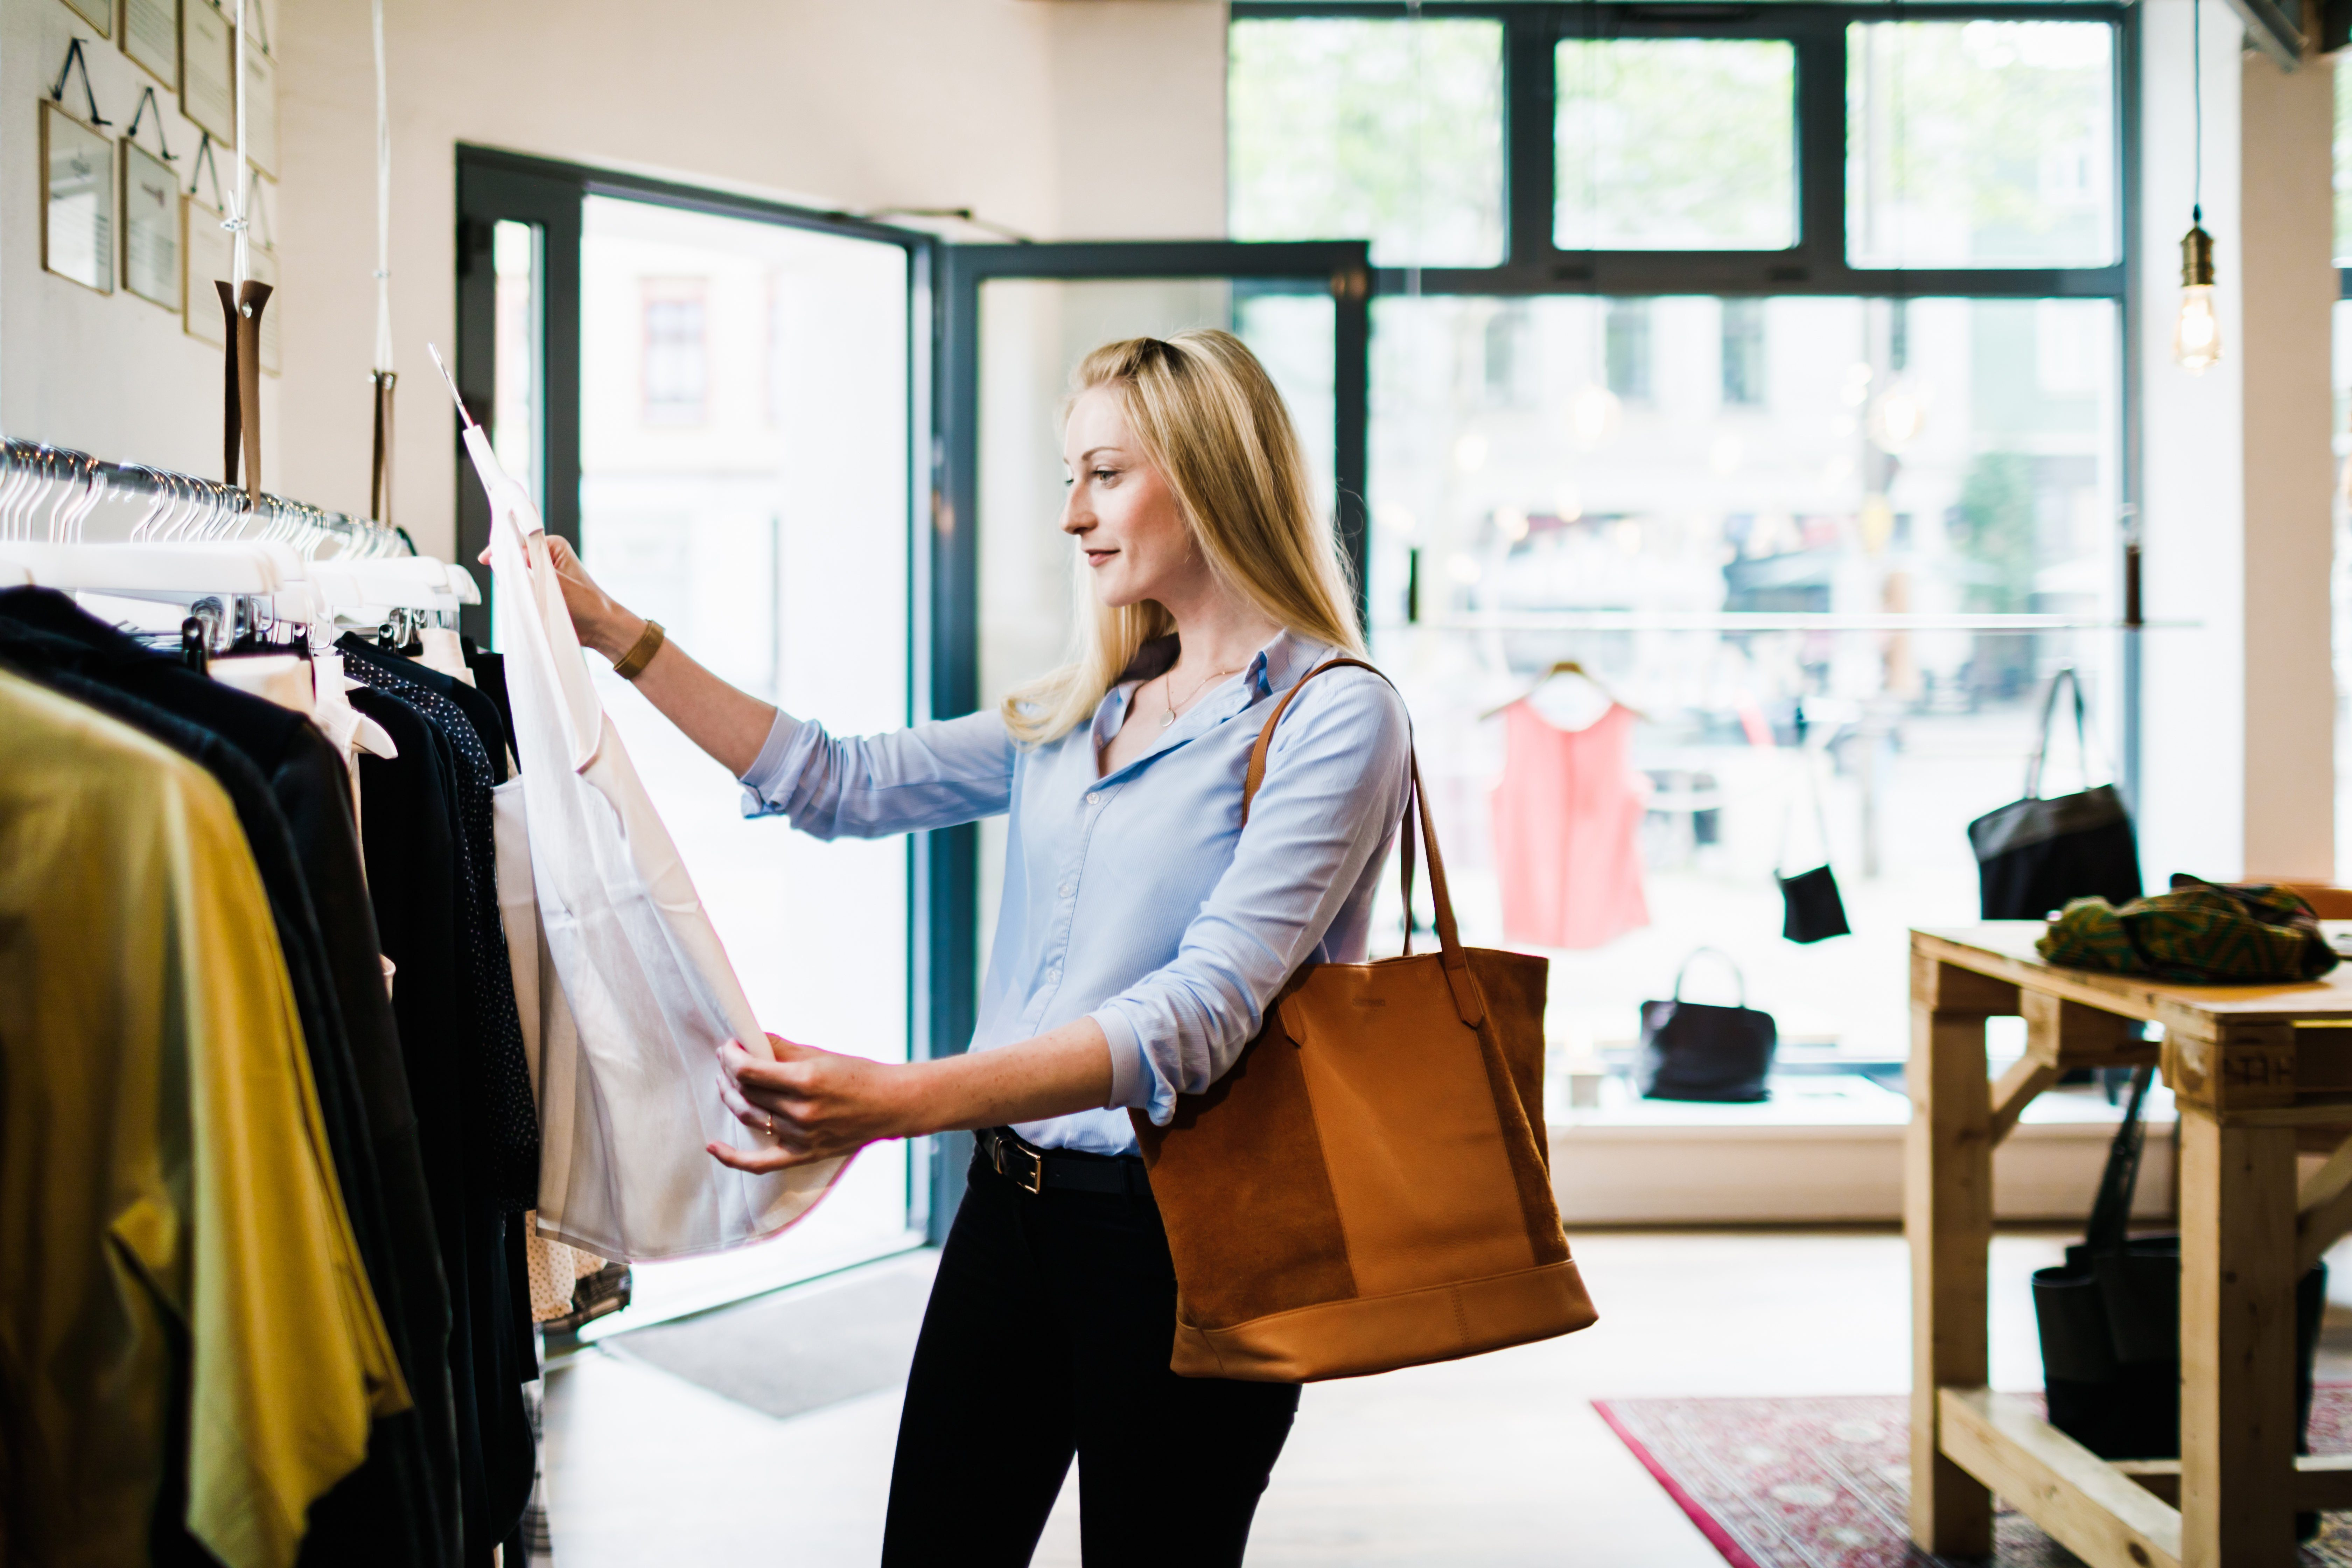 Woman Looking At Blouse While Shopping For The Day